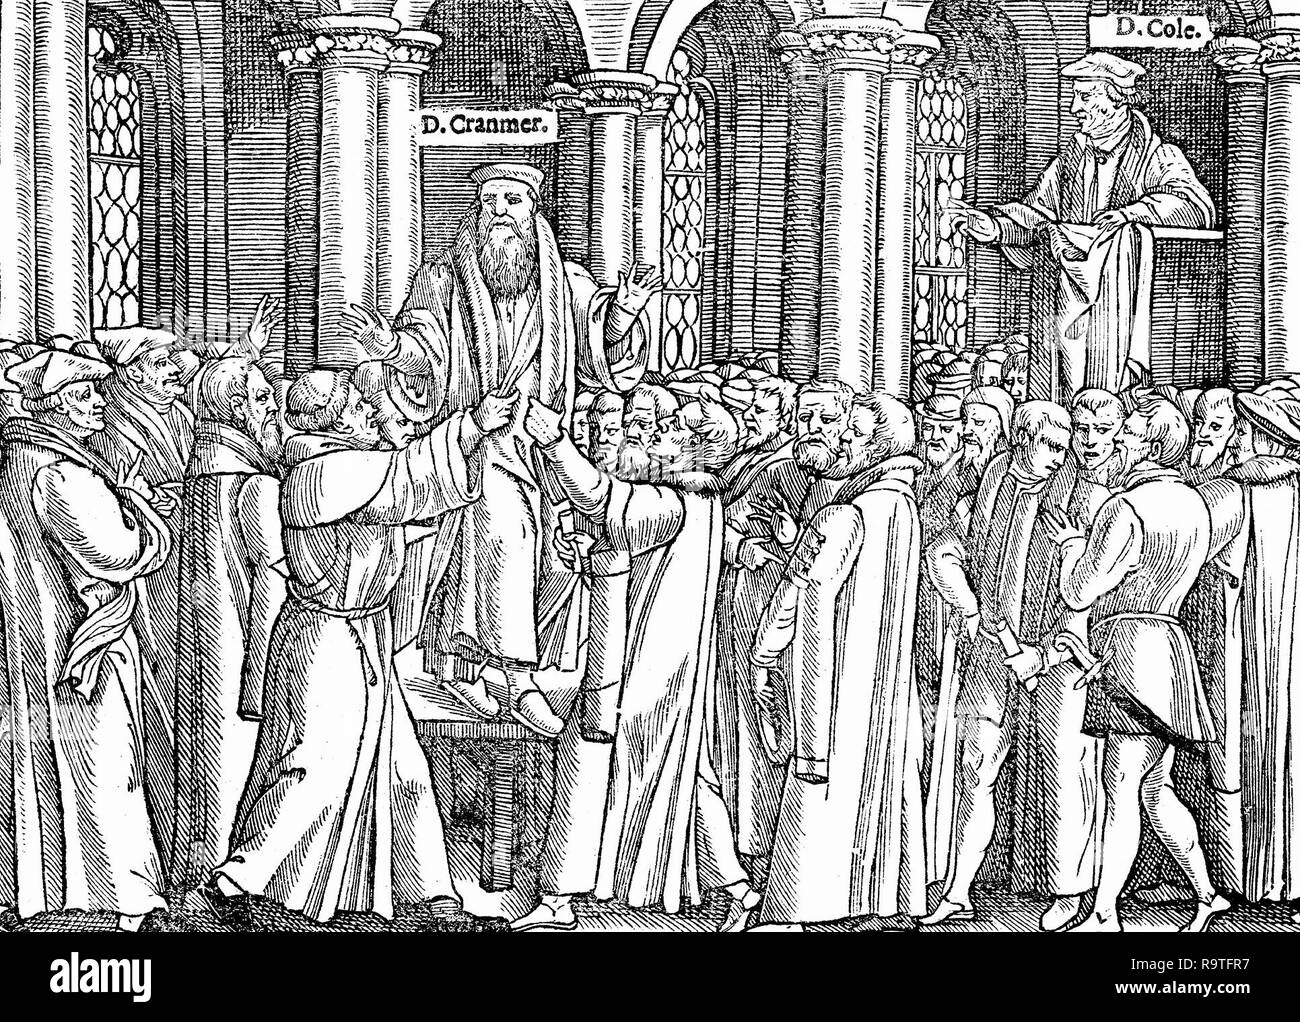 The persecution of Dr. Thomas Cranmer, a leader of the English Reformation. 1580 - Stock Image